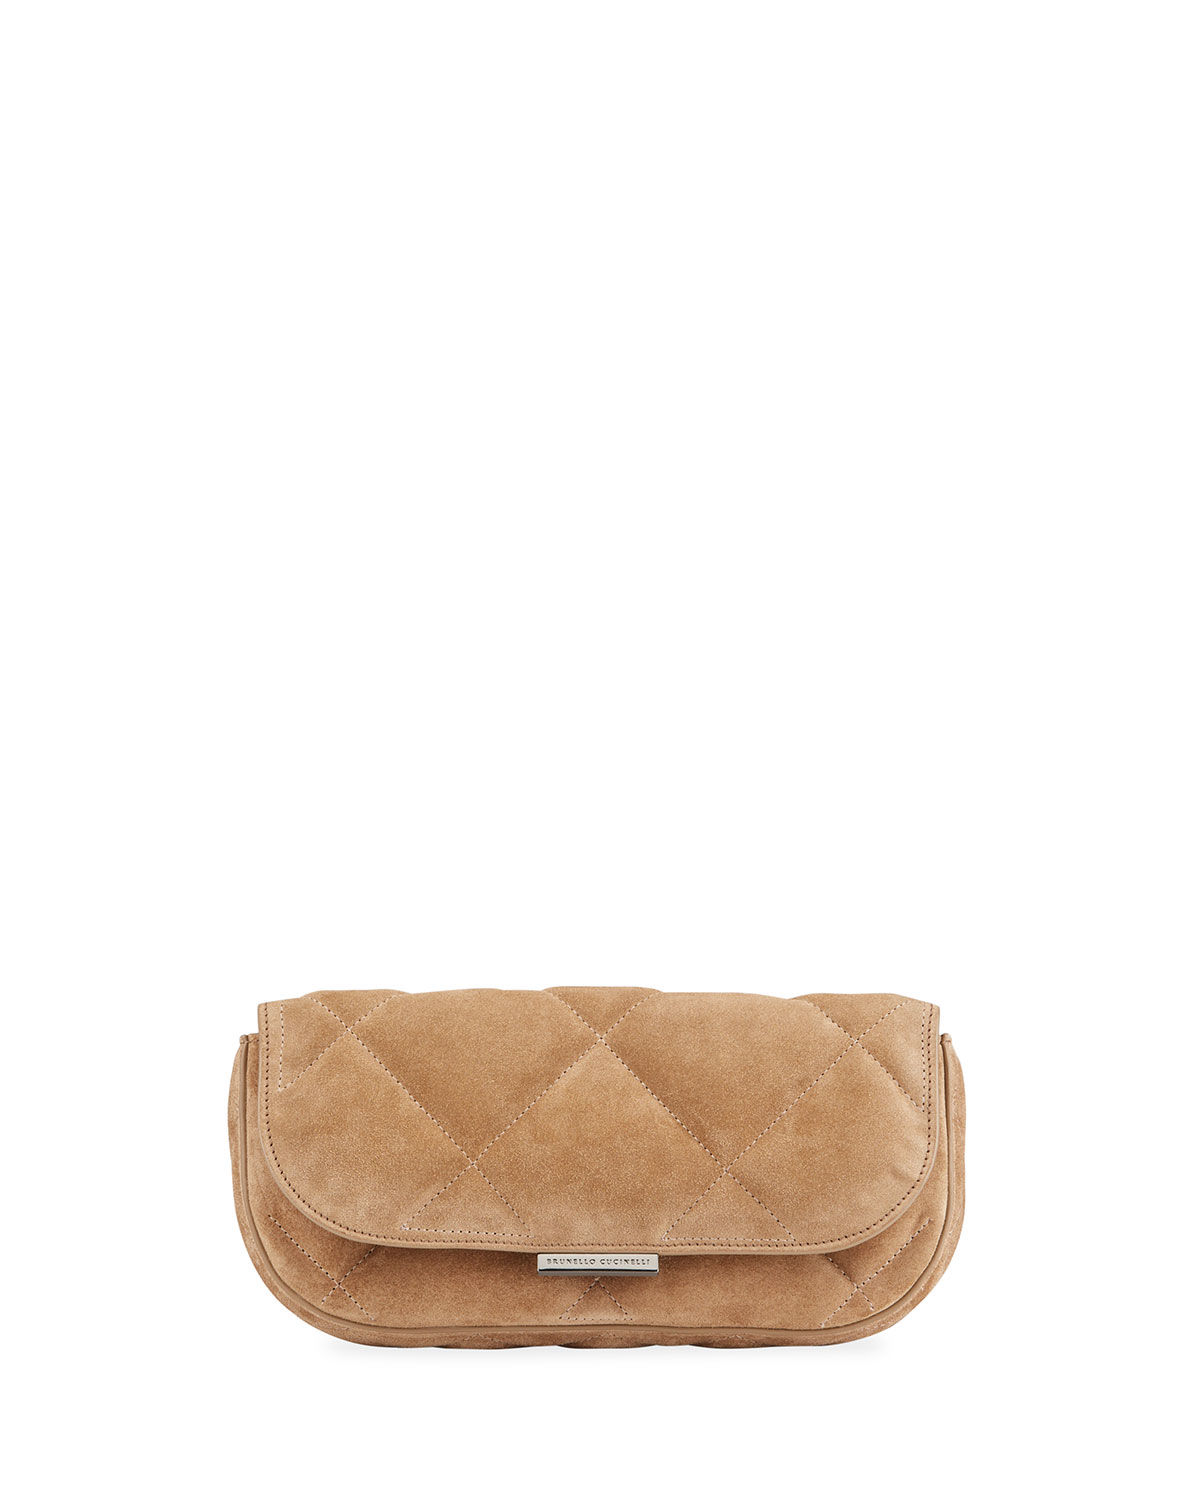 Quilted Suede East-West Clutch Bag w/ Monili Strap